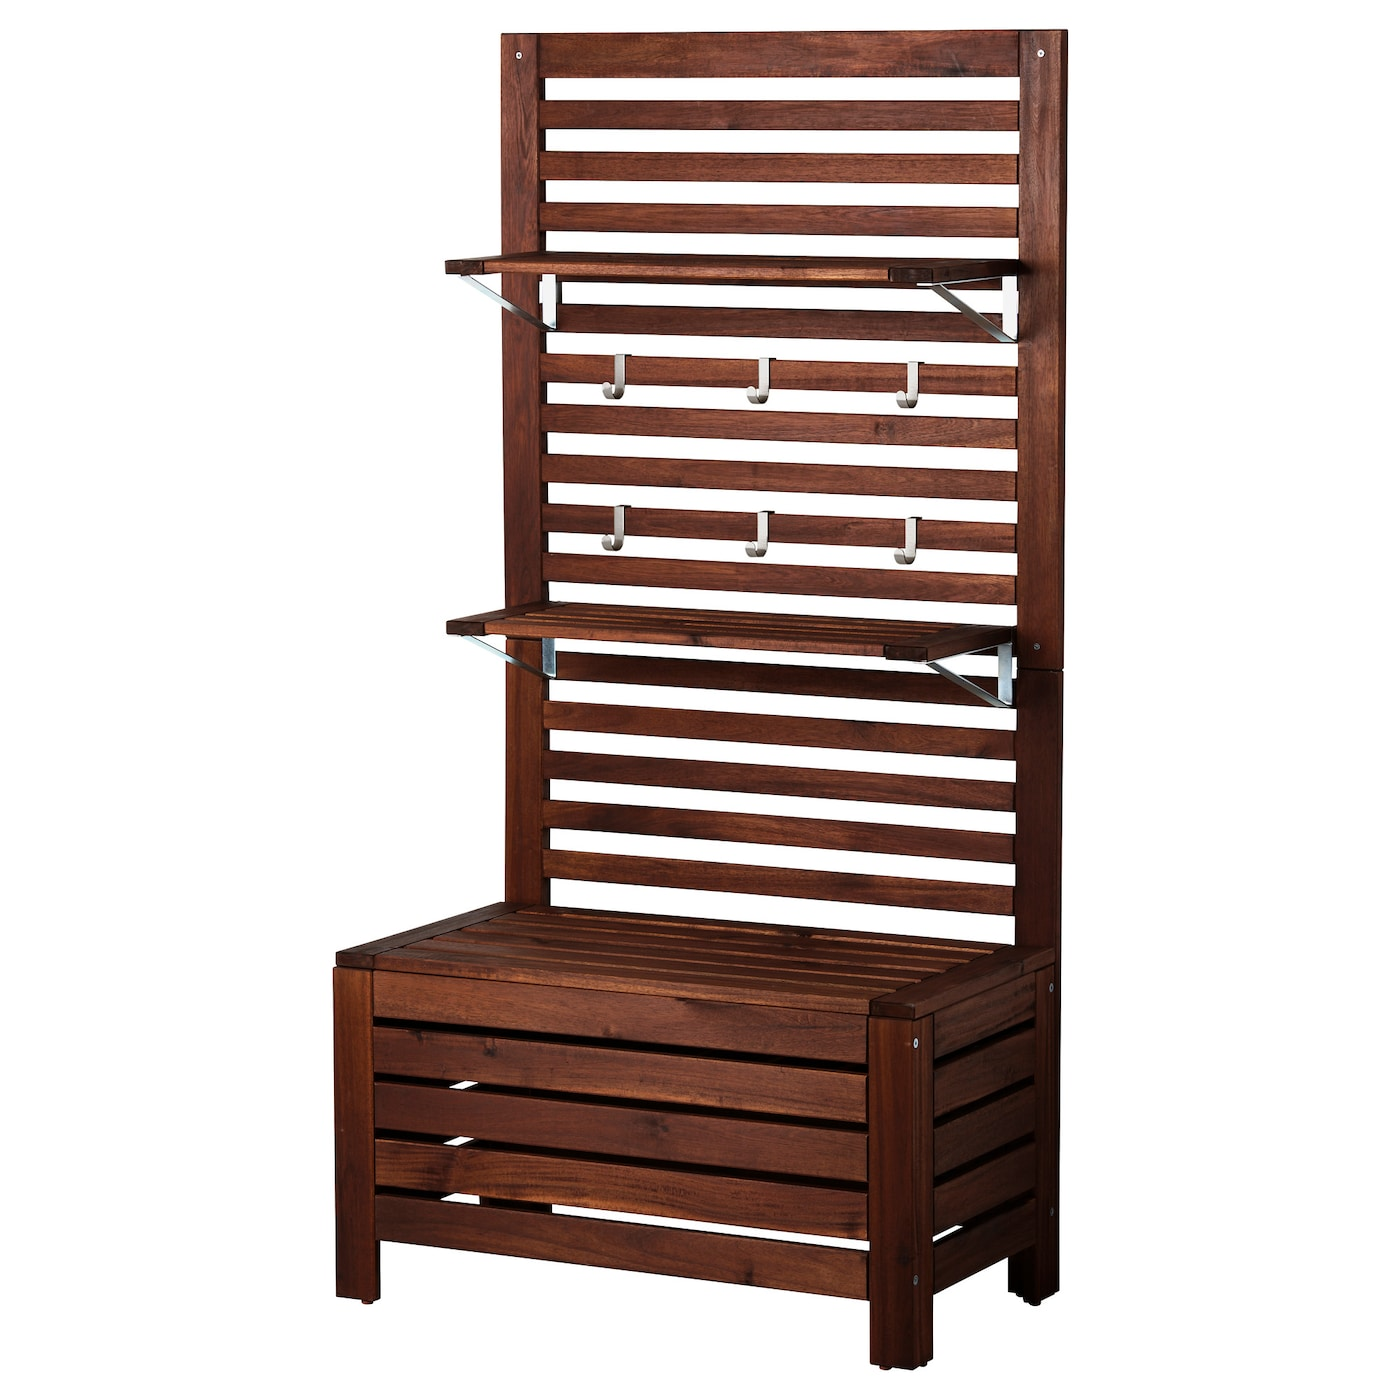 Applaro Bench W Panel Shelves Outdoor Brown Stained Ikea